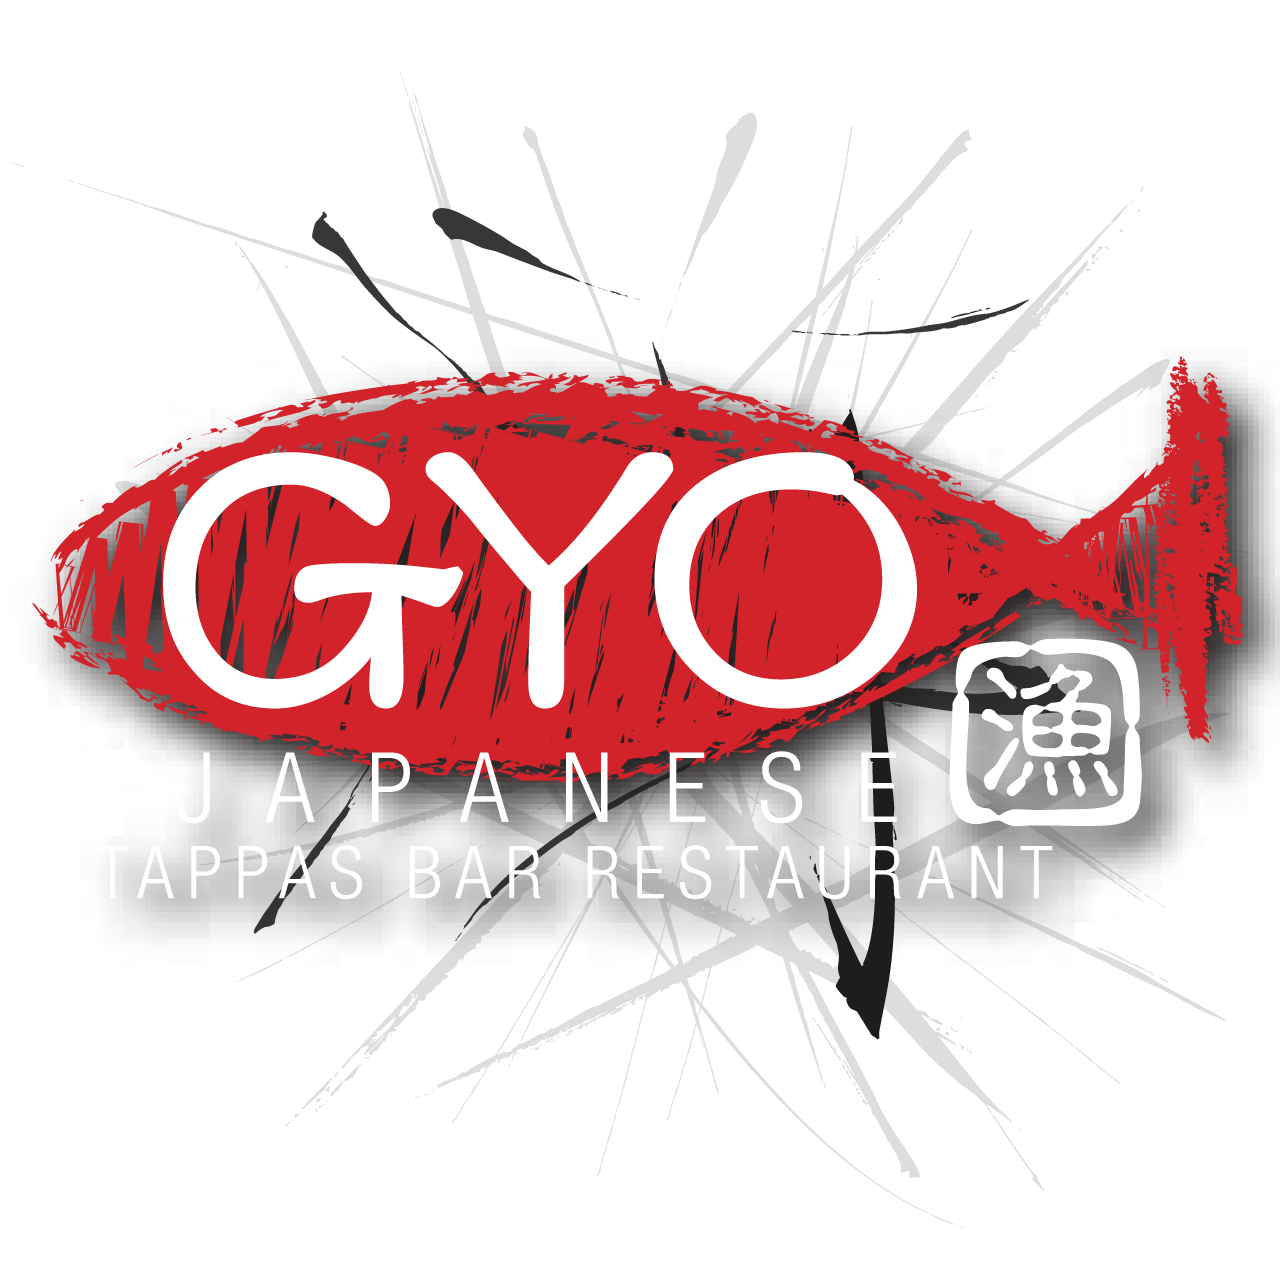 GYO JAPANESE TAPAS BAR RESTAURANT | Townsville Japanese Restaurant